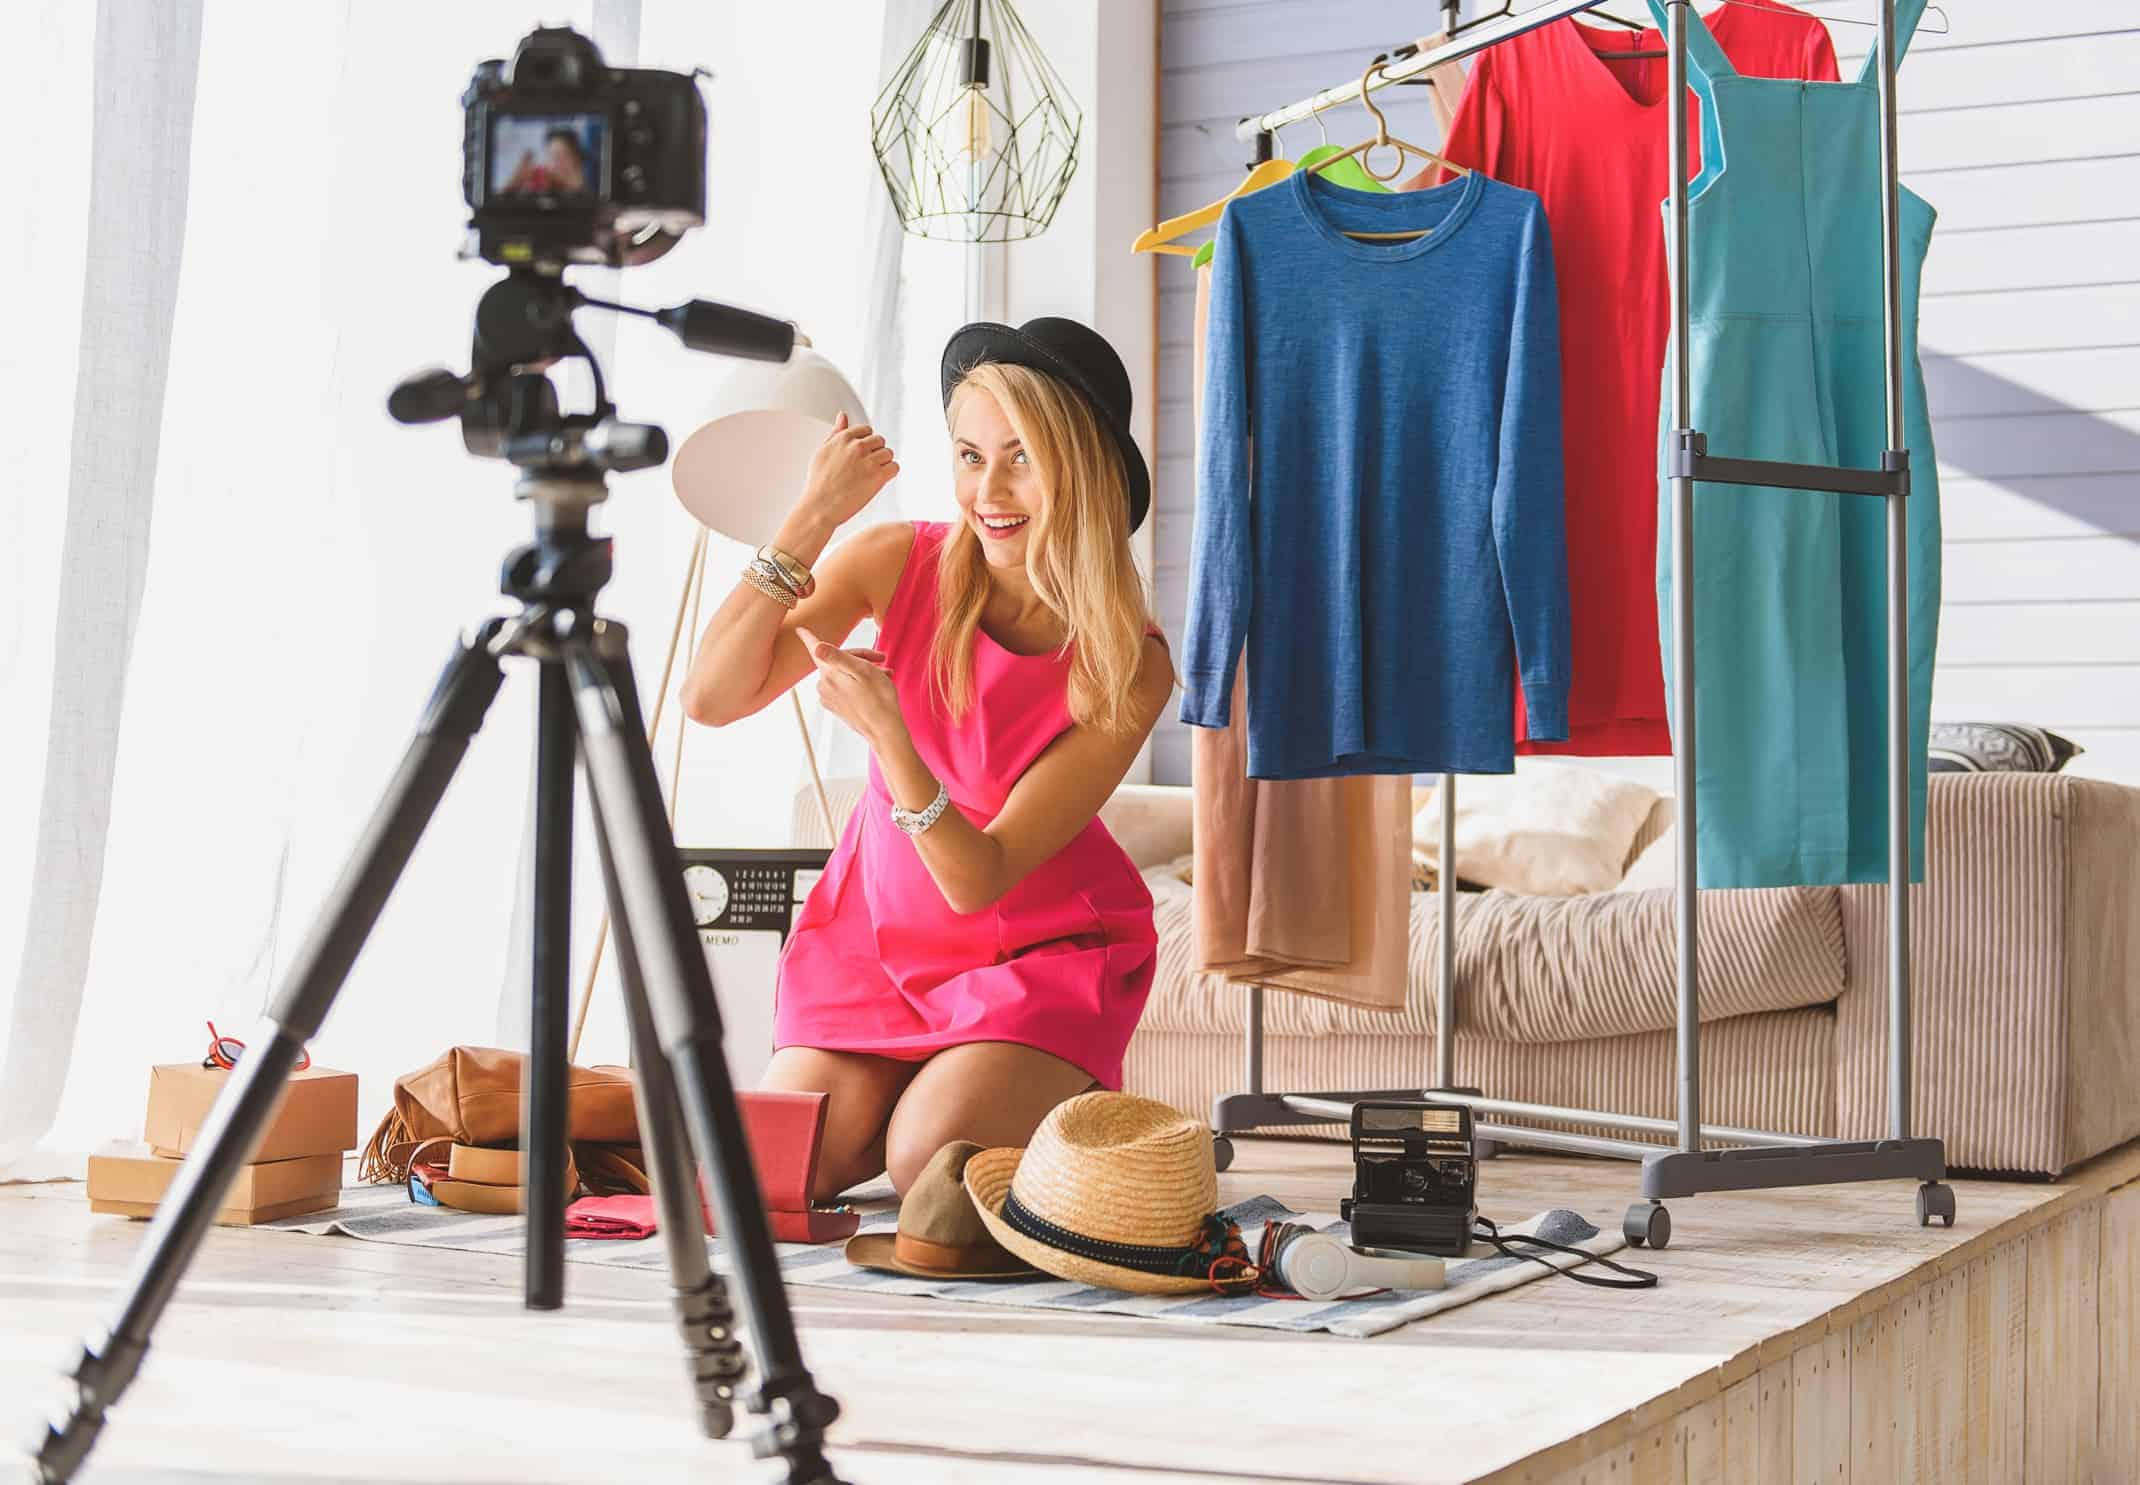 Why you should hire a Professional Model for your Social Media Campaign